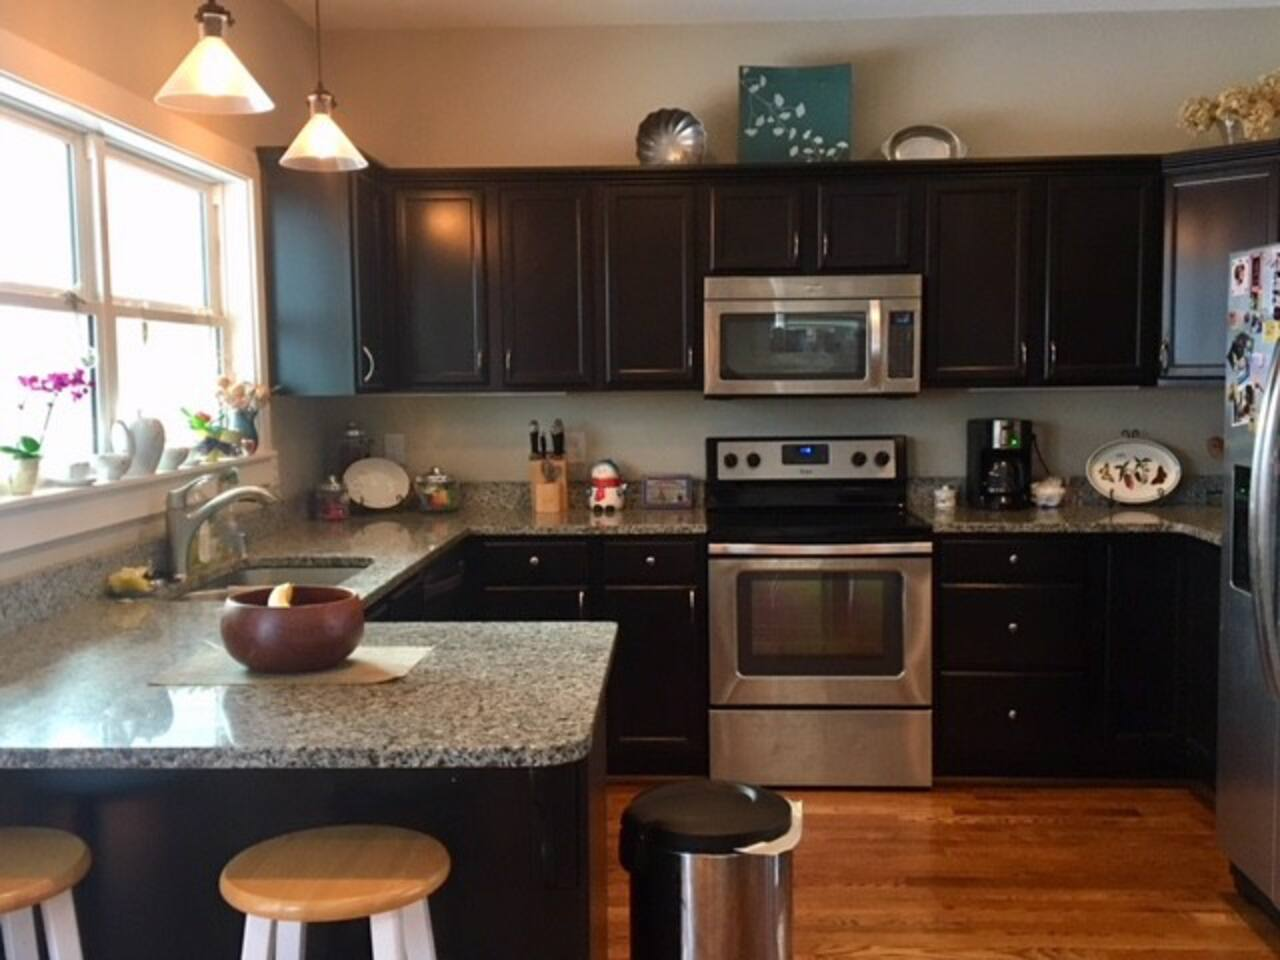 We offer coffee, tea and creamer for guests in our fully equipped kitchen.